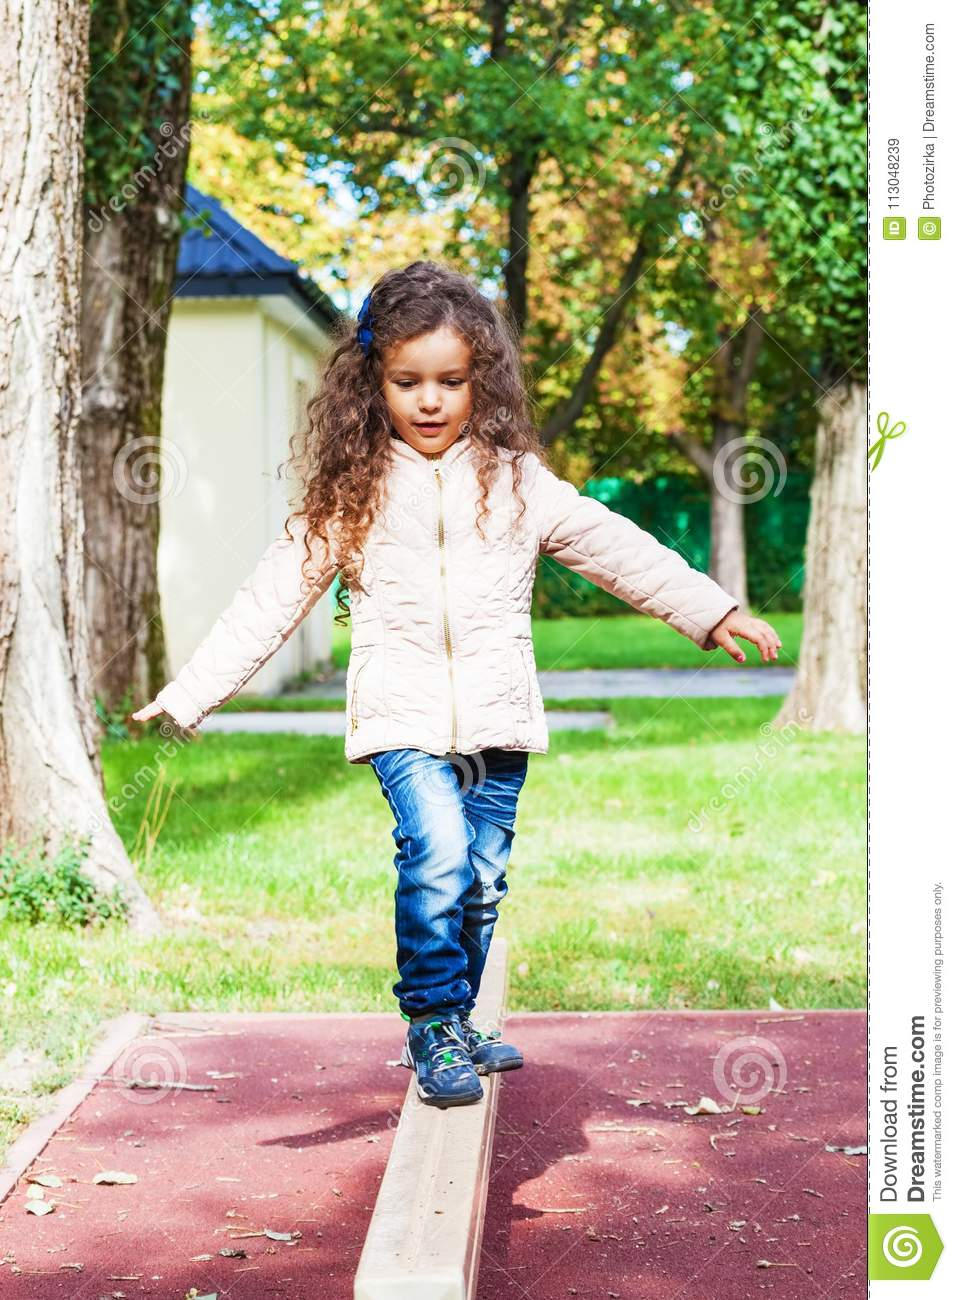 Child Is Practice Balancing In Playground Stock Image